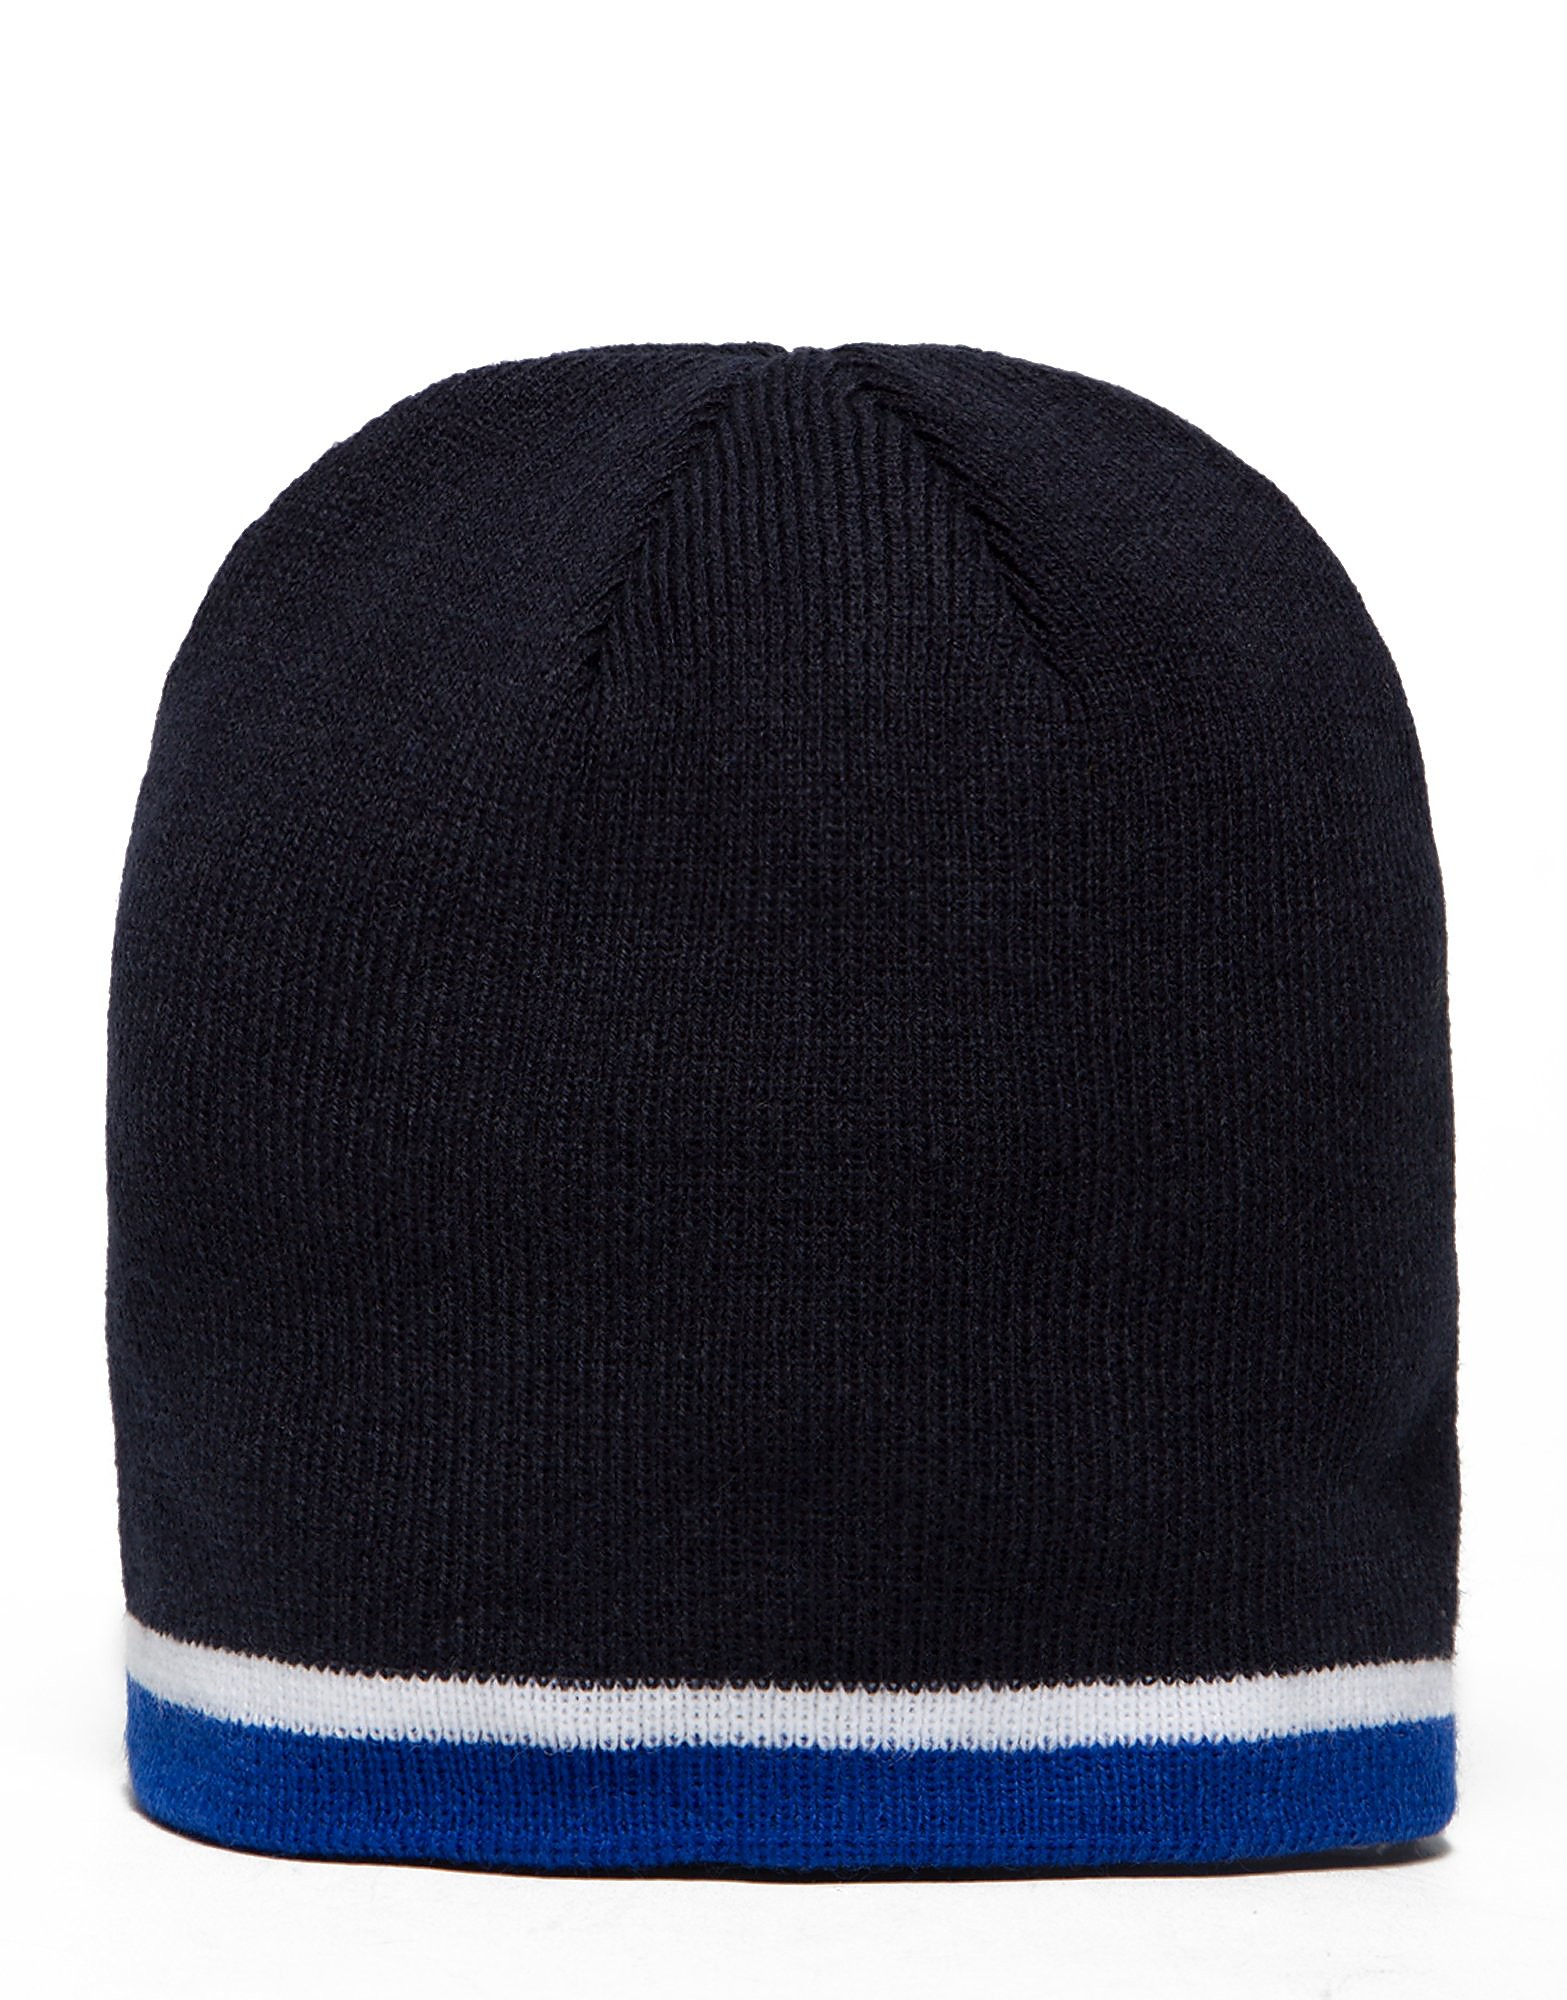 Official Team Chelsea FC Tip Beanie